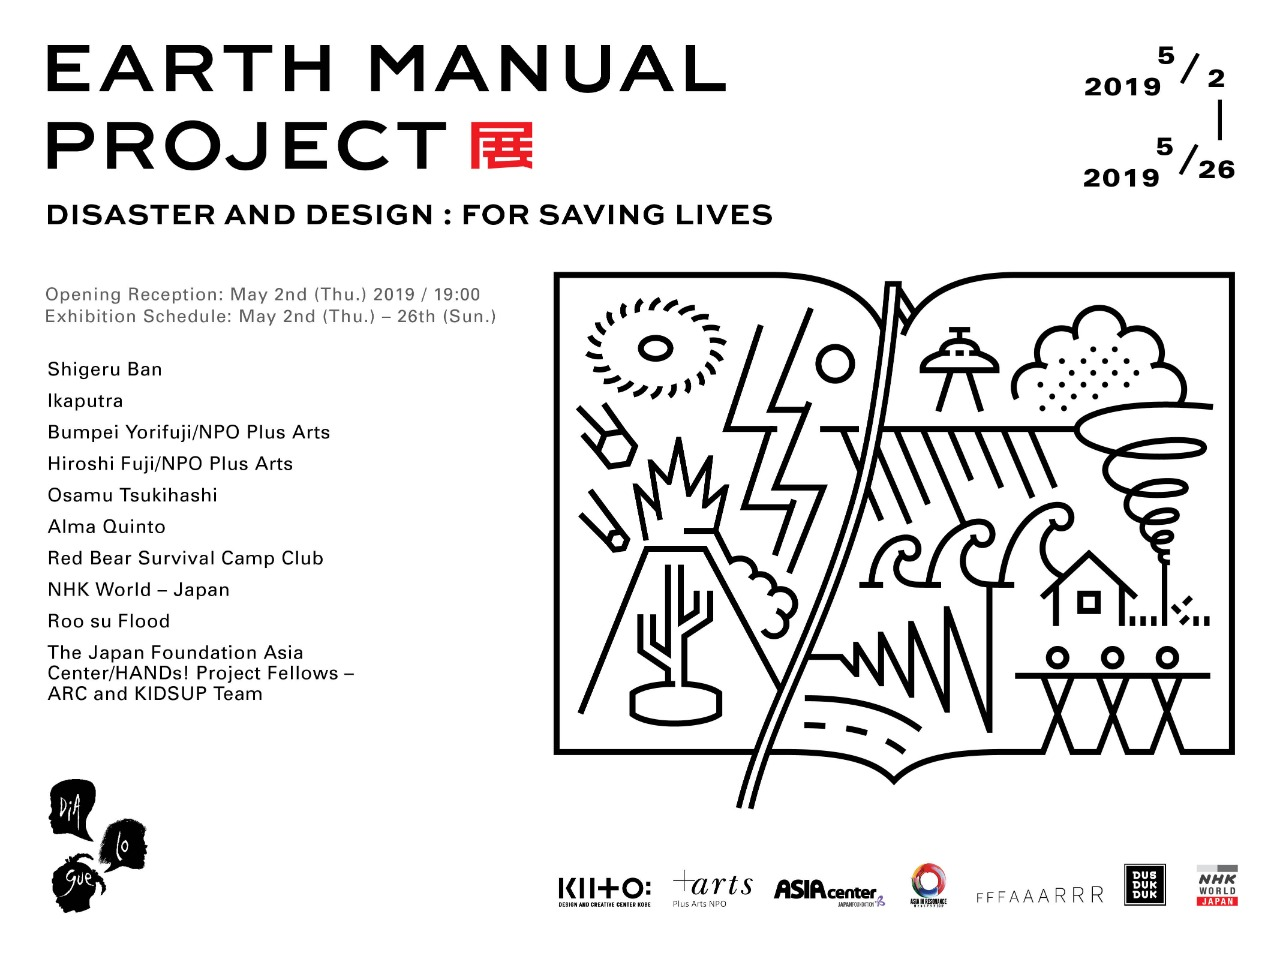 Earth Manual Project - Disaster and Design: for Saving Lives